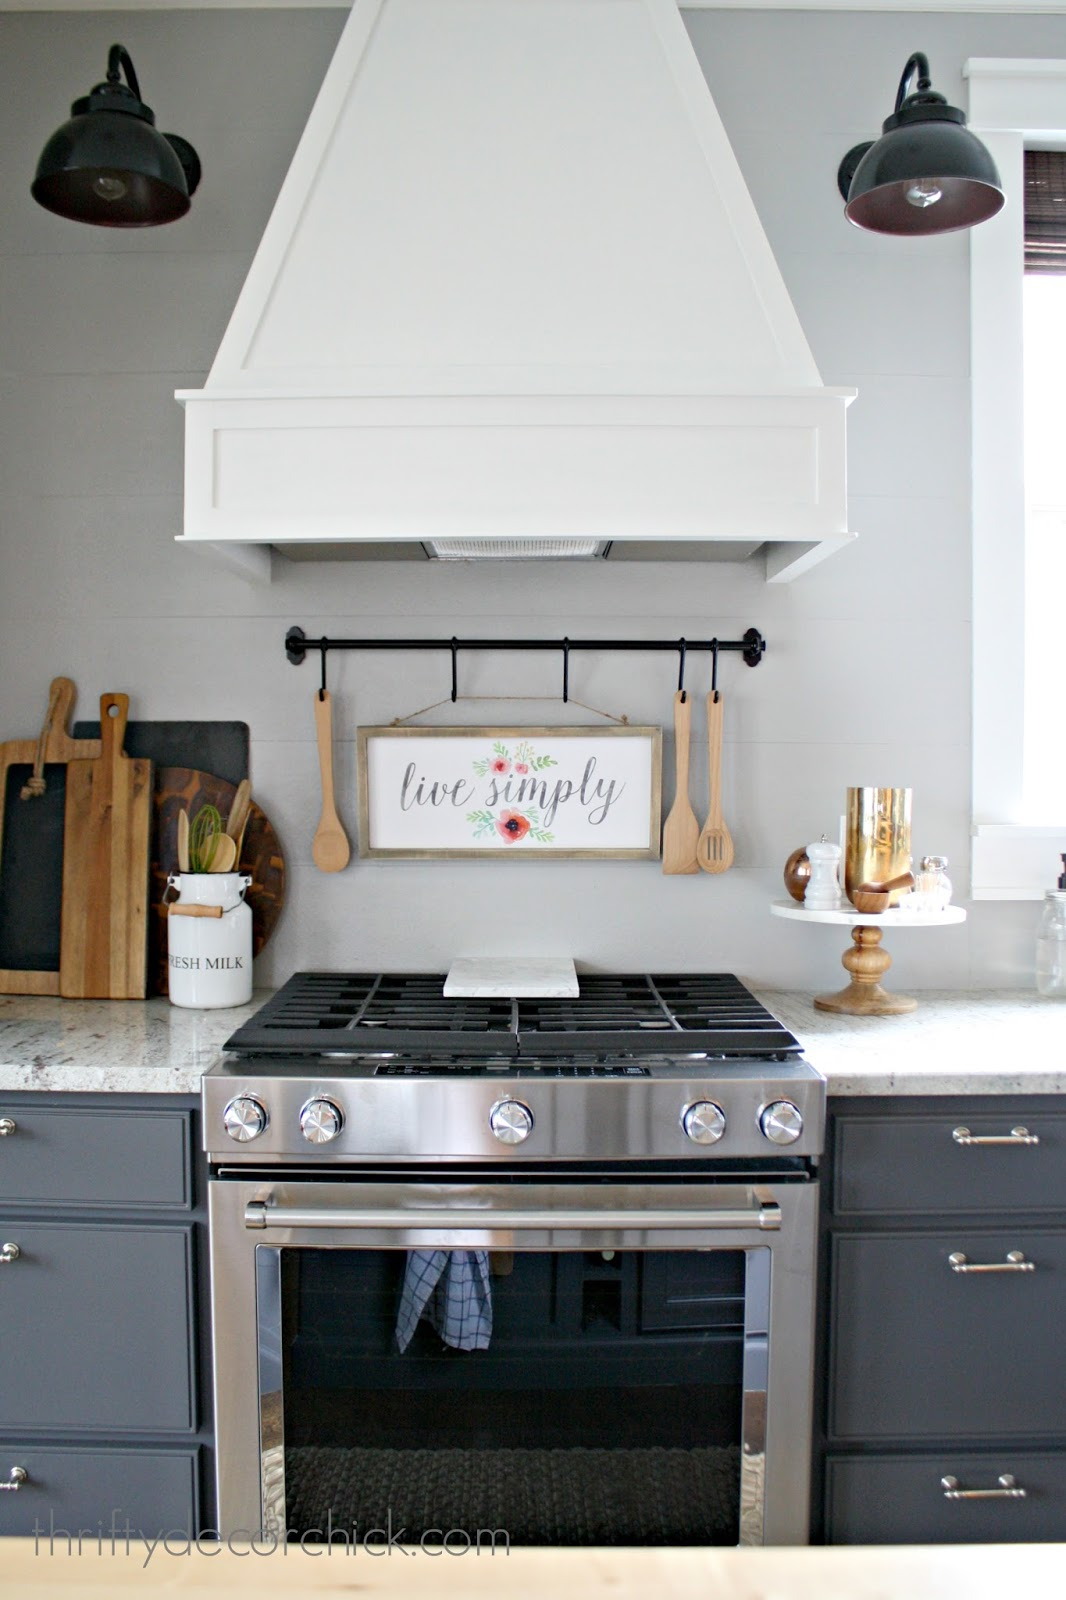 How Our Diy Kitchen Renovation Is Holding Up 1 1 2 Years